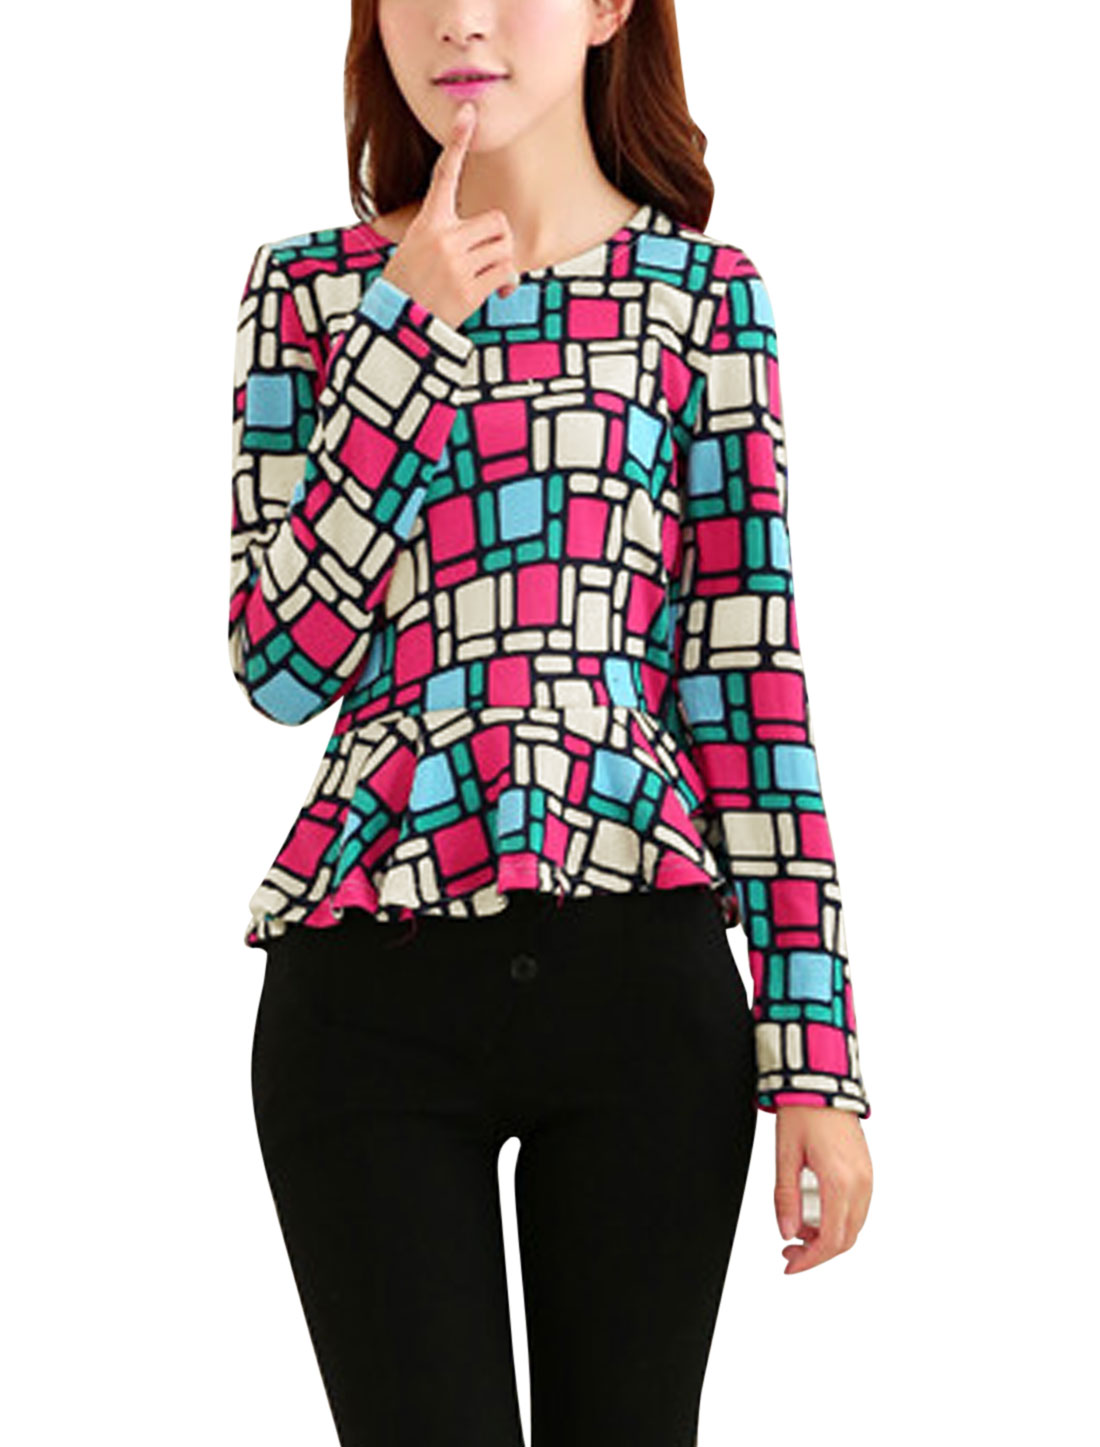 Lady Geometric Pattern Long Sleeves Light Peplum Knit Top Multicolor XS